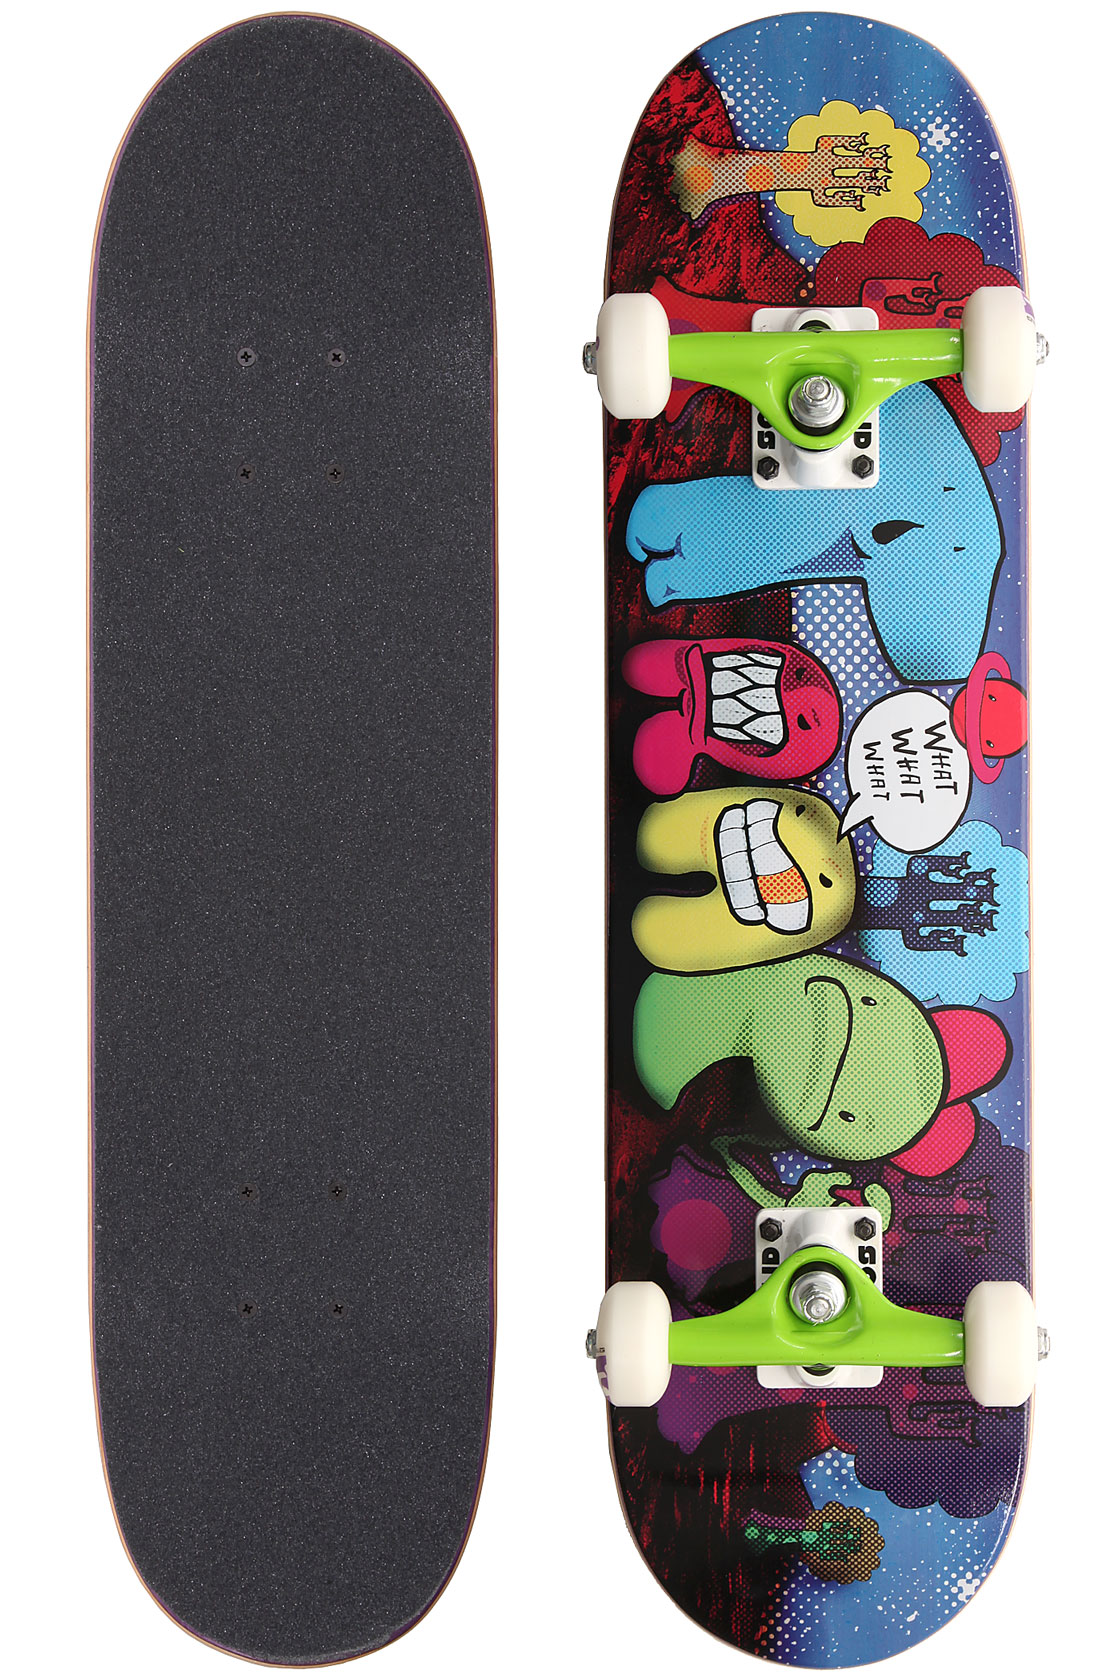 skateboard designs for boys search results million gallery